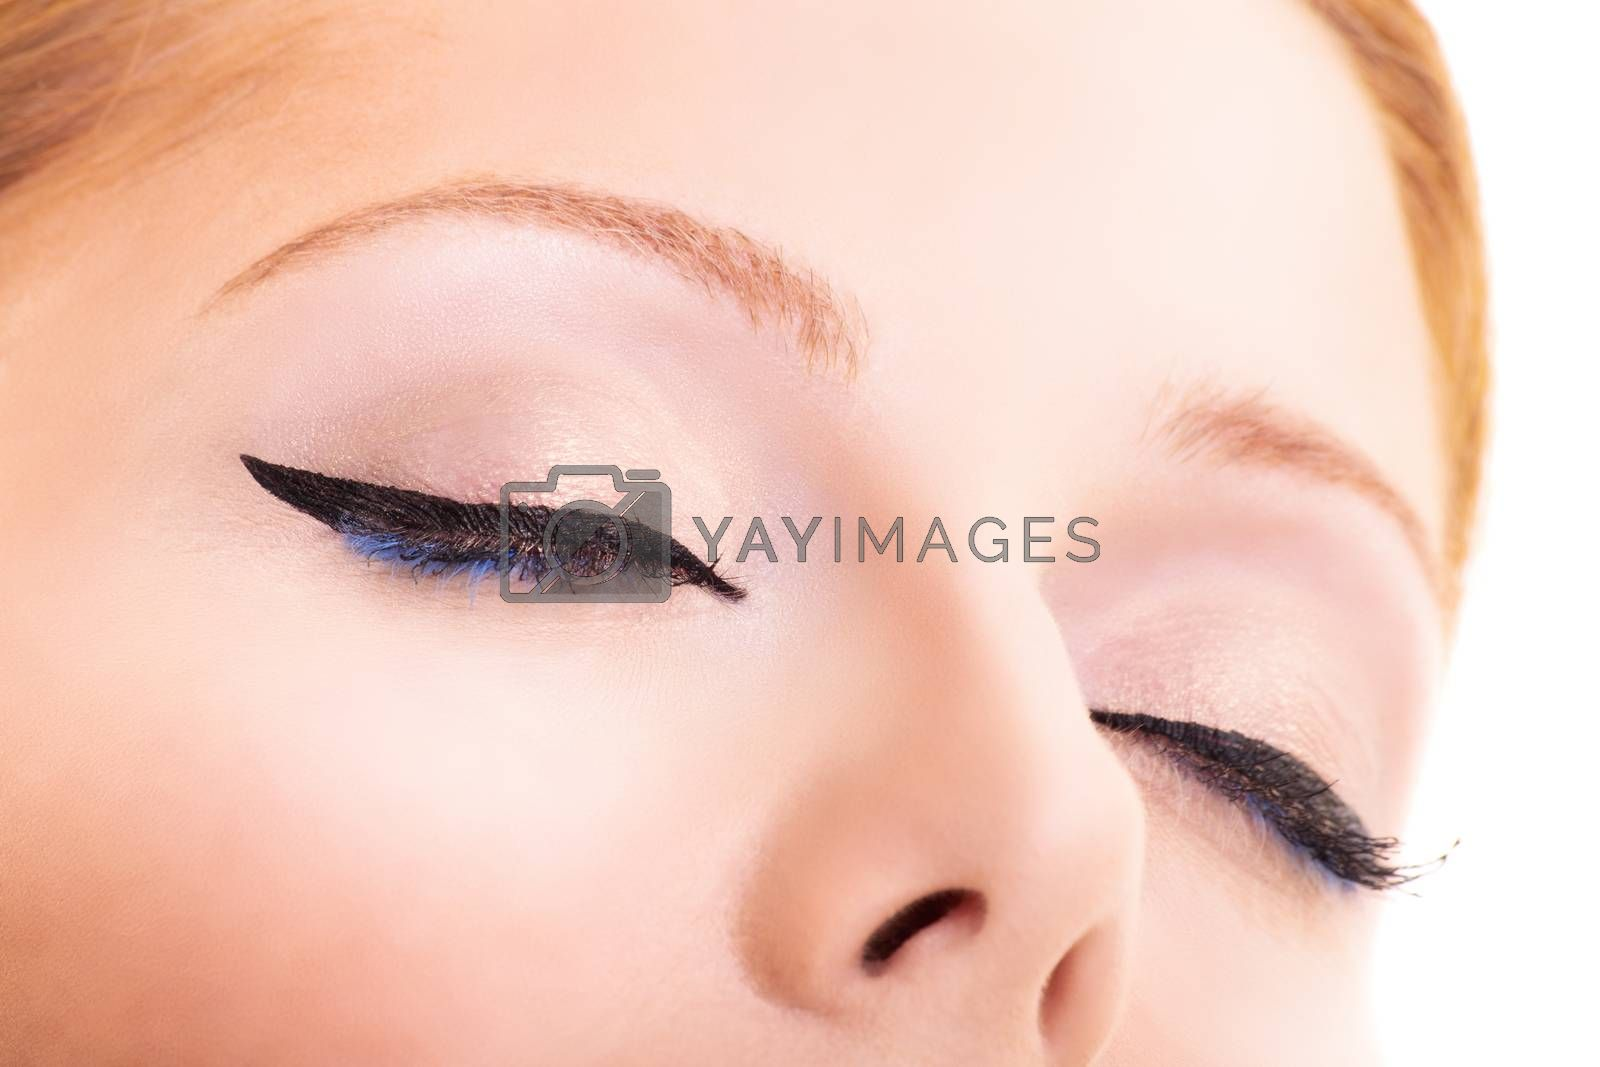 Close-up beauty shot of pretty young model with classic eyeliner, black and blue mascara, glowing clean skin and blond hair. Beauty and make up concept. Closeup macro shot of fashionable eyeliner on closed eyes.